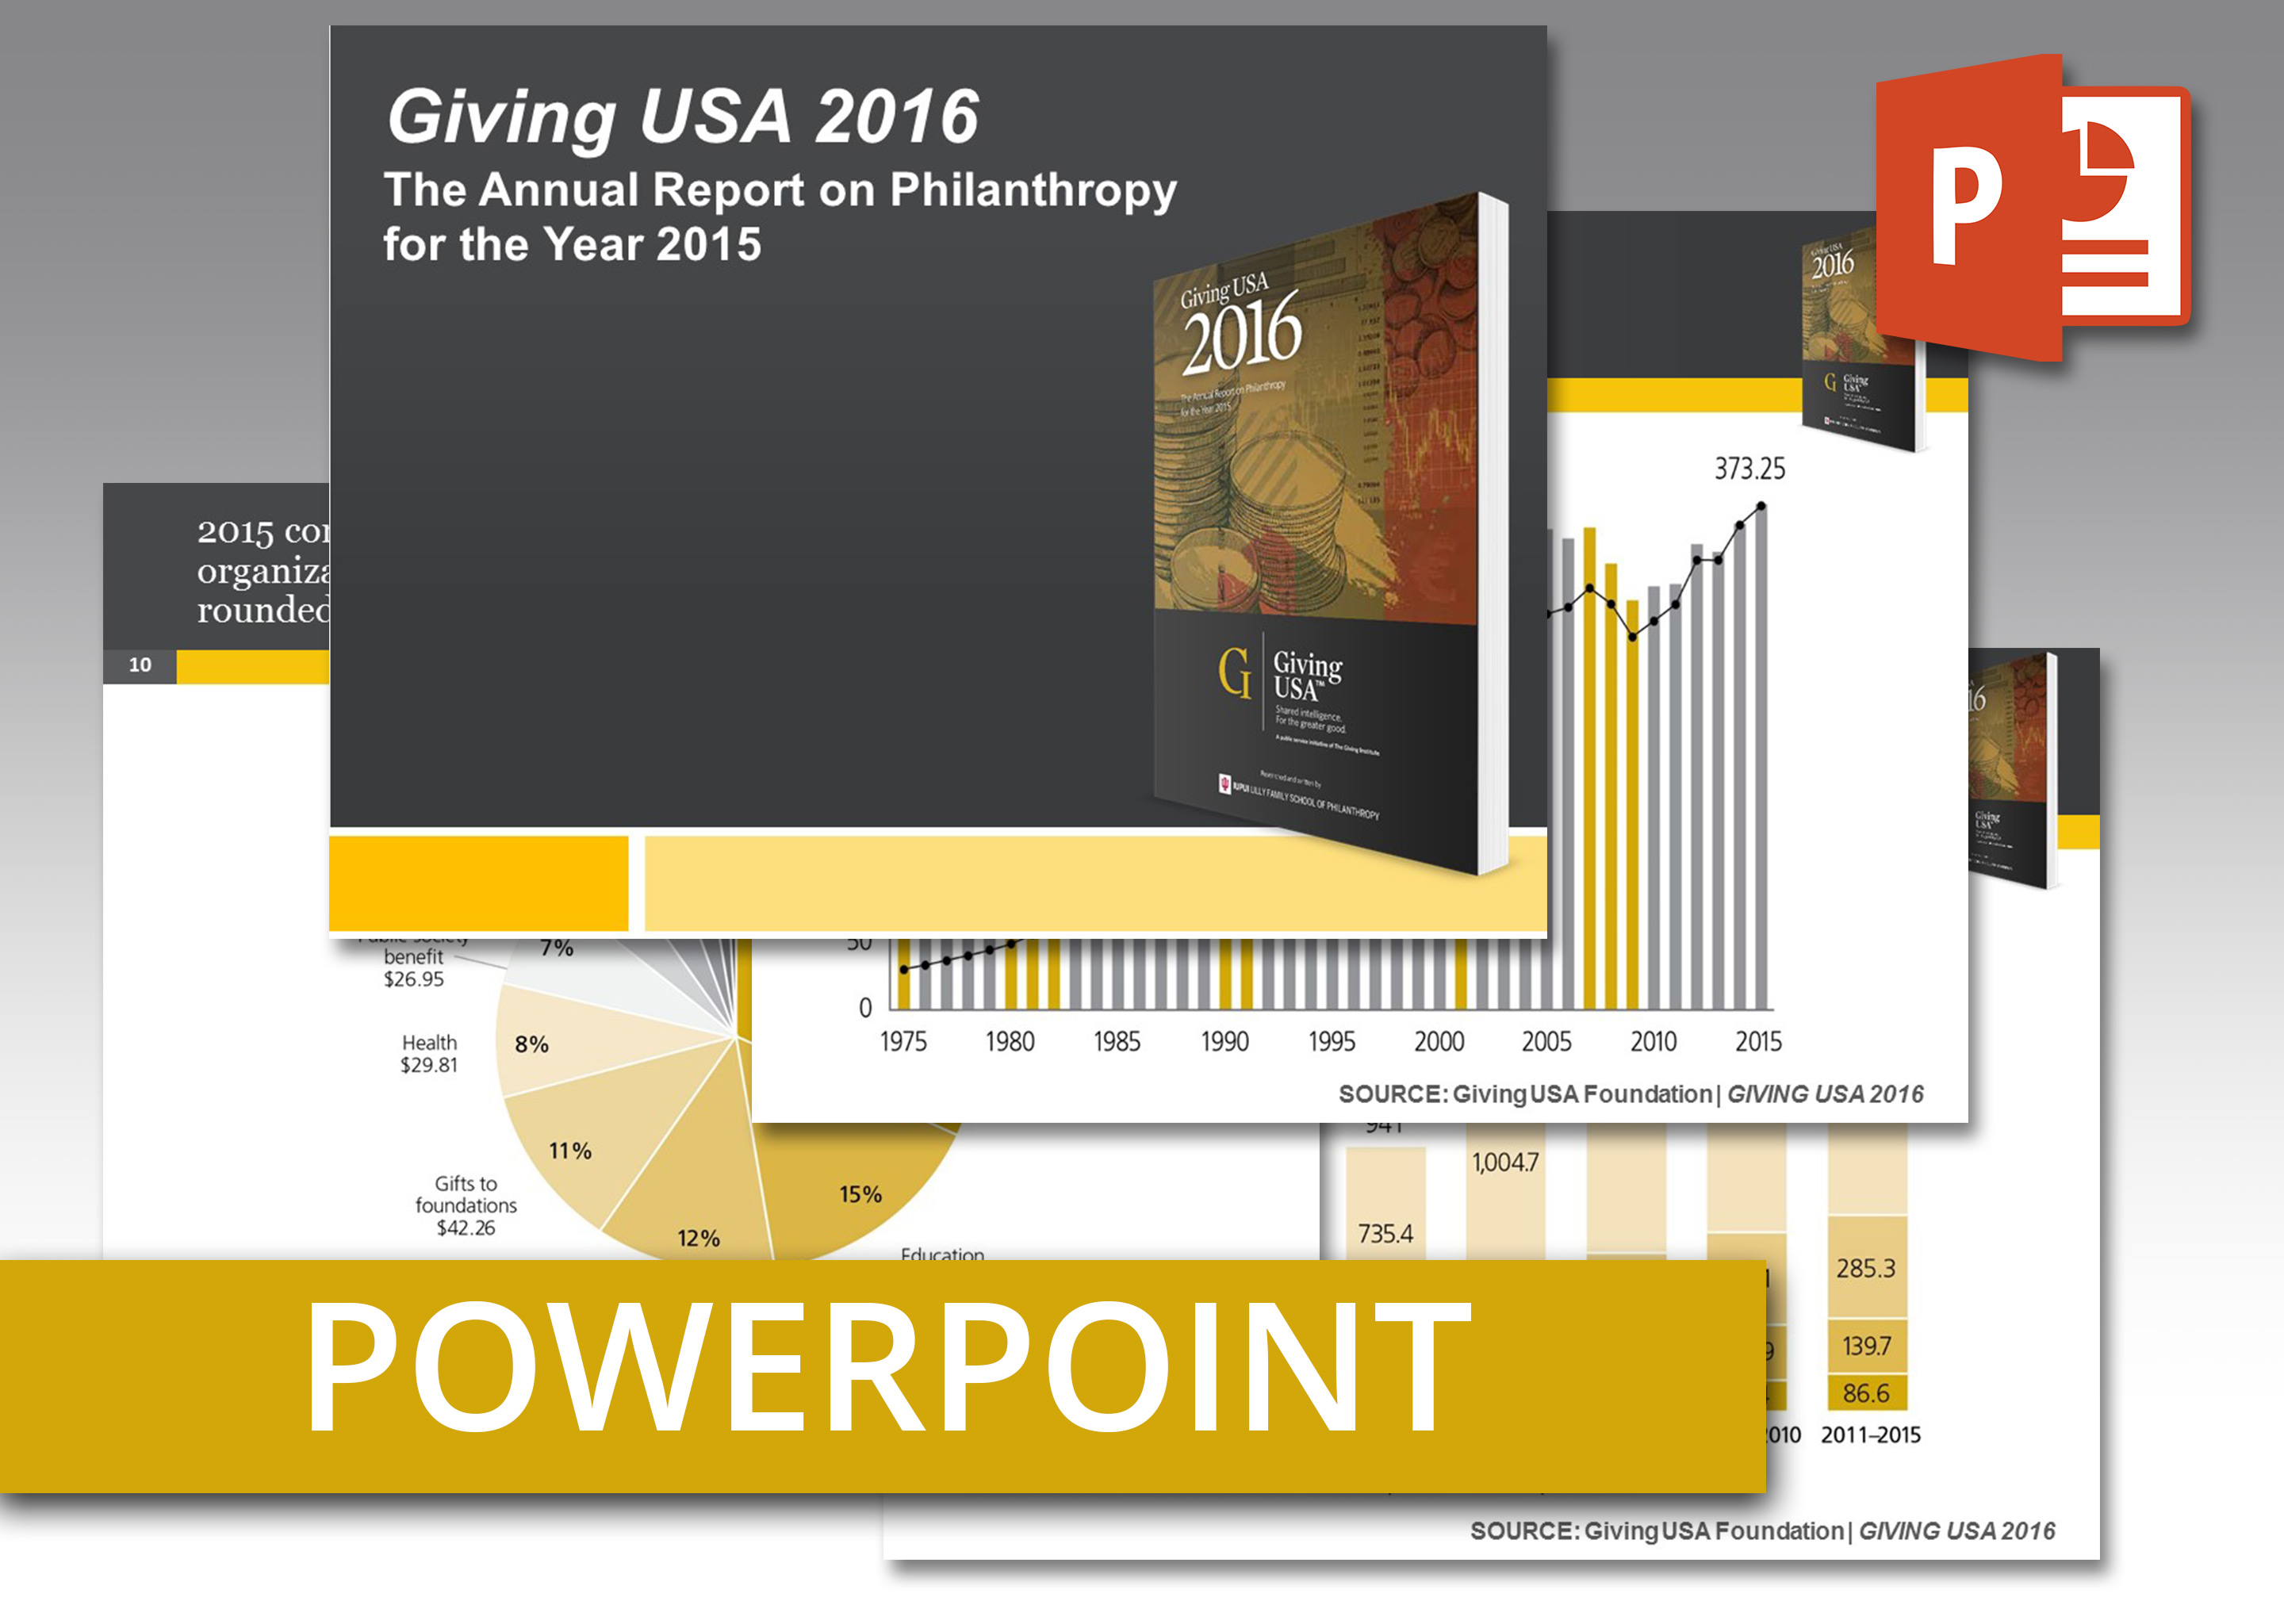 Coolmathgamesus  Stunning Giving Usa  Powerpoint An Easytouse Presentation Of Report  With Great Giving Usa  Powerpoint An Easytouse Presentation Of Report Findings Including Talking Points With Lovely Powerpoint Two Animations At Once Also Powerpoint Presentation Show Notes In Addition Number Powerpoint Slides And Powerpoint Presentation Without Powerpoint As Well As Safety Signs Powerpoint Additionally Glencoe Chemistry Powerpoints From Givingusaorg With Coolmathgamesus  Great Giving Usa  Powerpoint An Easytouse Presentation Of Report  With Lovely Giving Usa  Powerpoint An Easytouse Presentation Of Report Findings Including Talking Points And Stunning Powerpoint Two Animations At Once Also Powerpoint Presentation Show Notes In Addition Number Powerpoint Slides From Givingusaorg